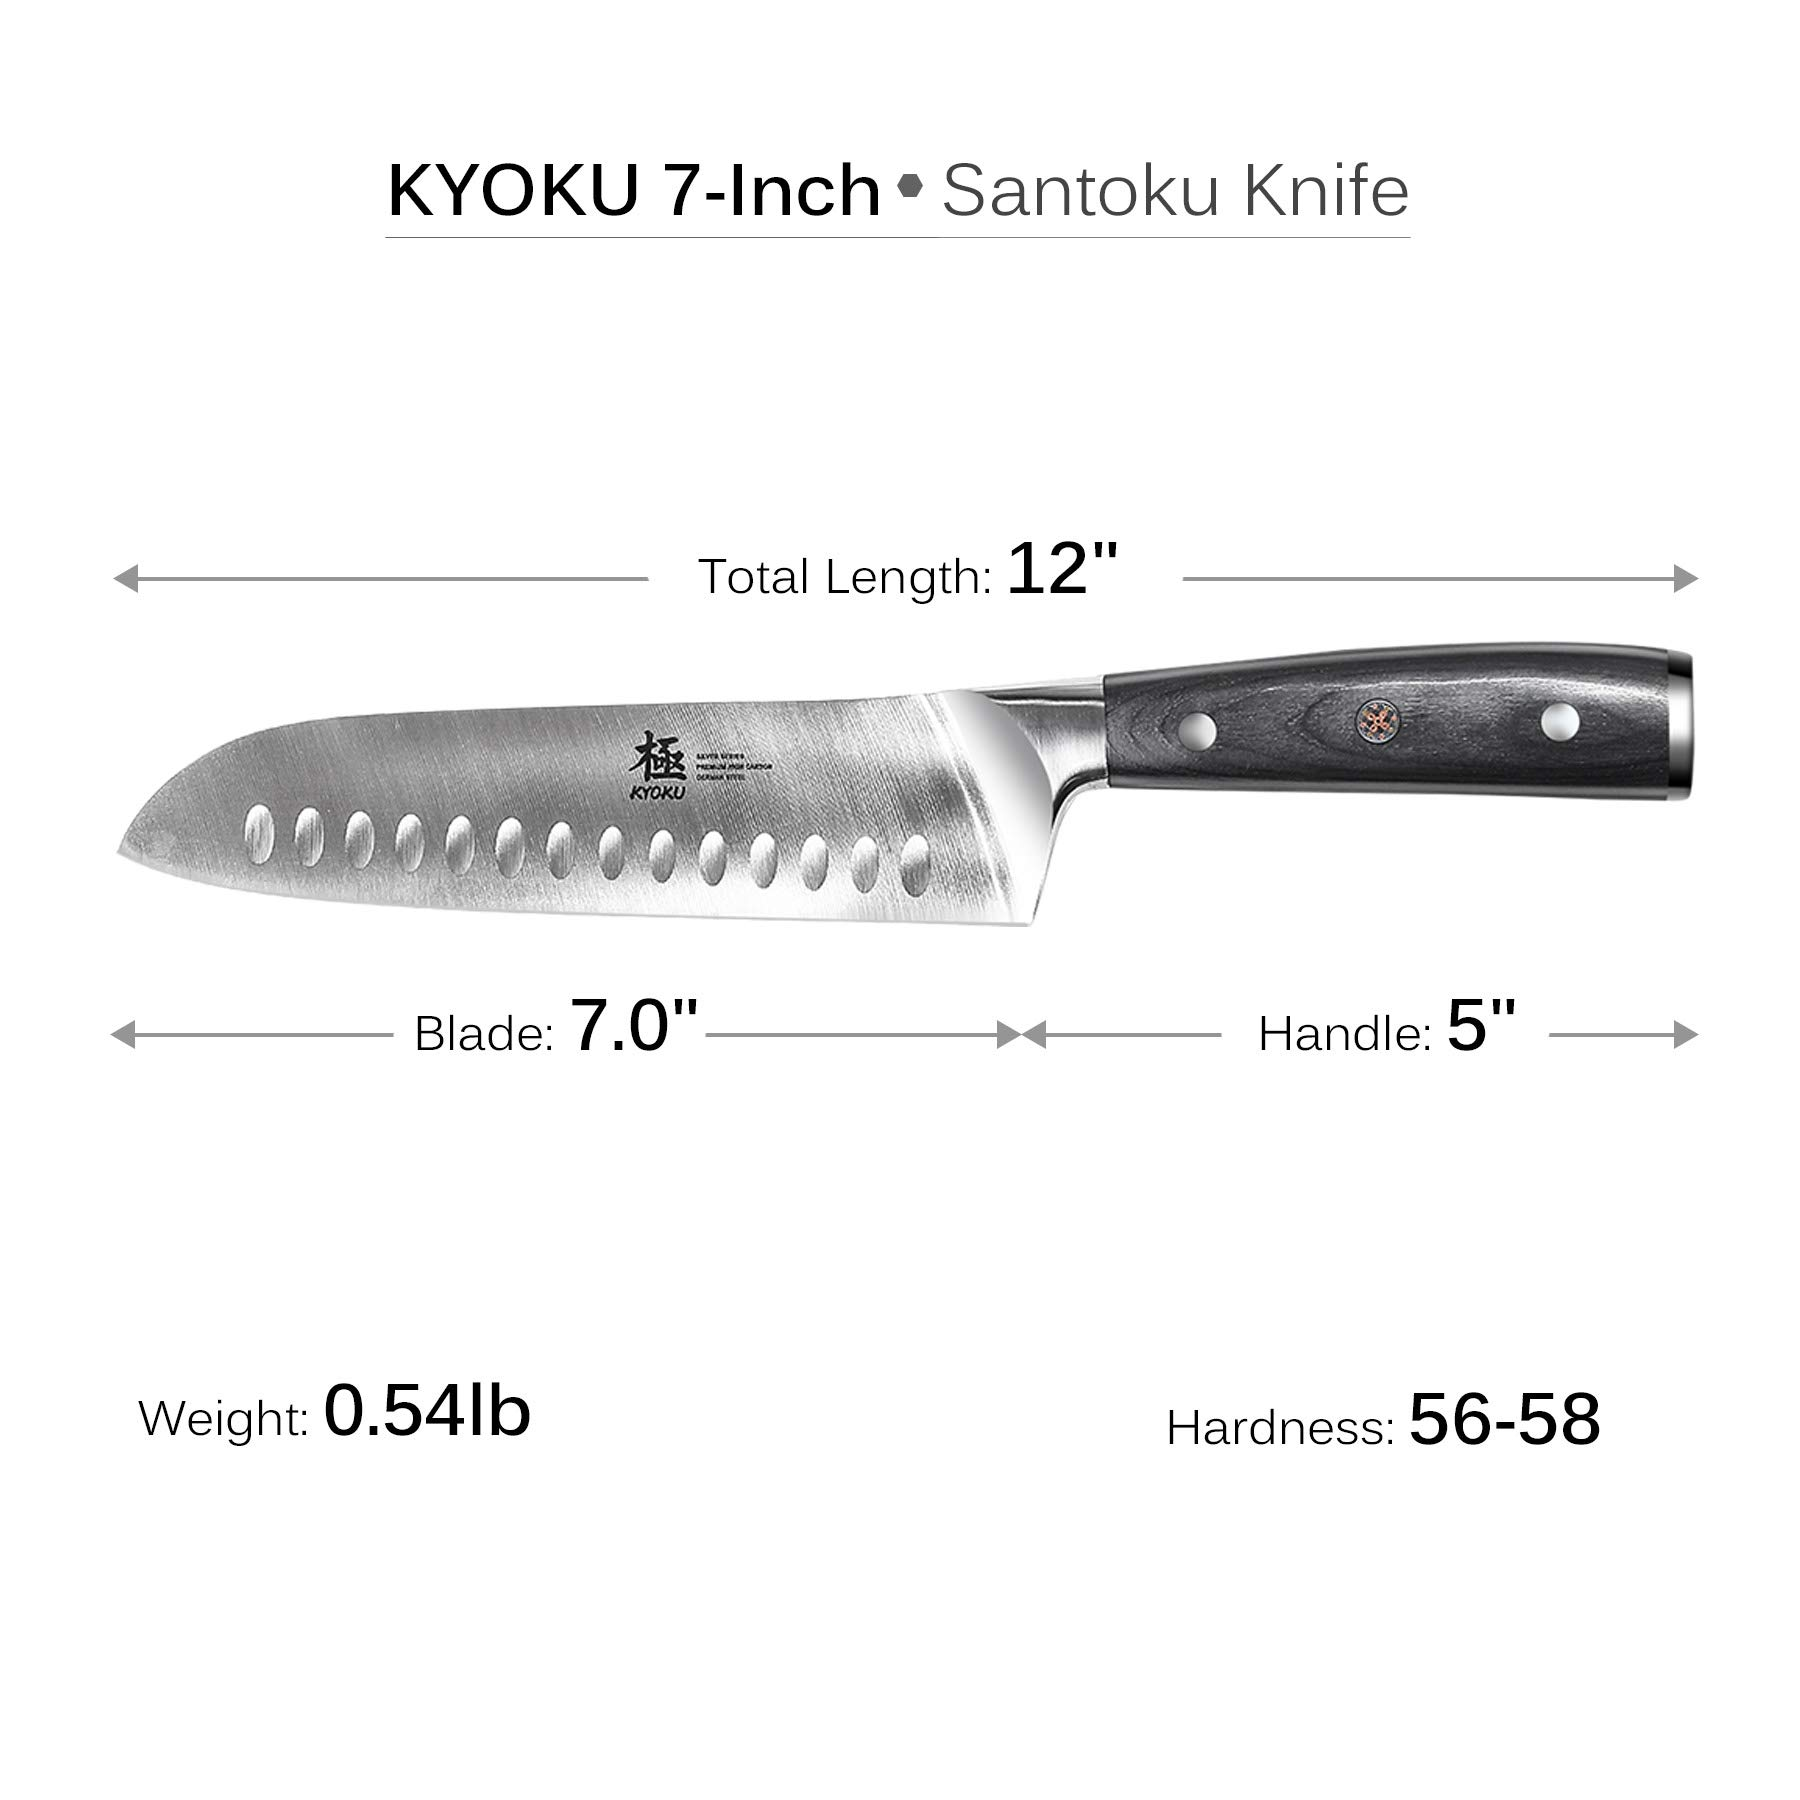 KYOKU Samurai Series - Santoku Chef Knife 7'' with Sheath & Case - Full Tang - Japanese High Carbon Steel - Pakkawood Handle with Mosaic Pin by KYOKU (Image #4)